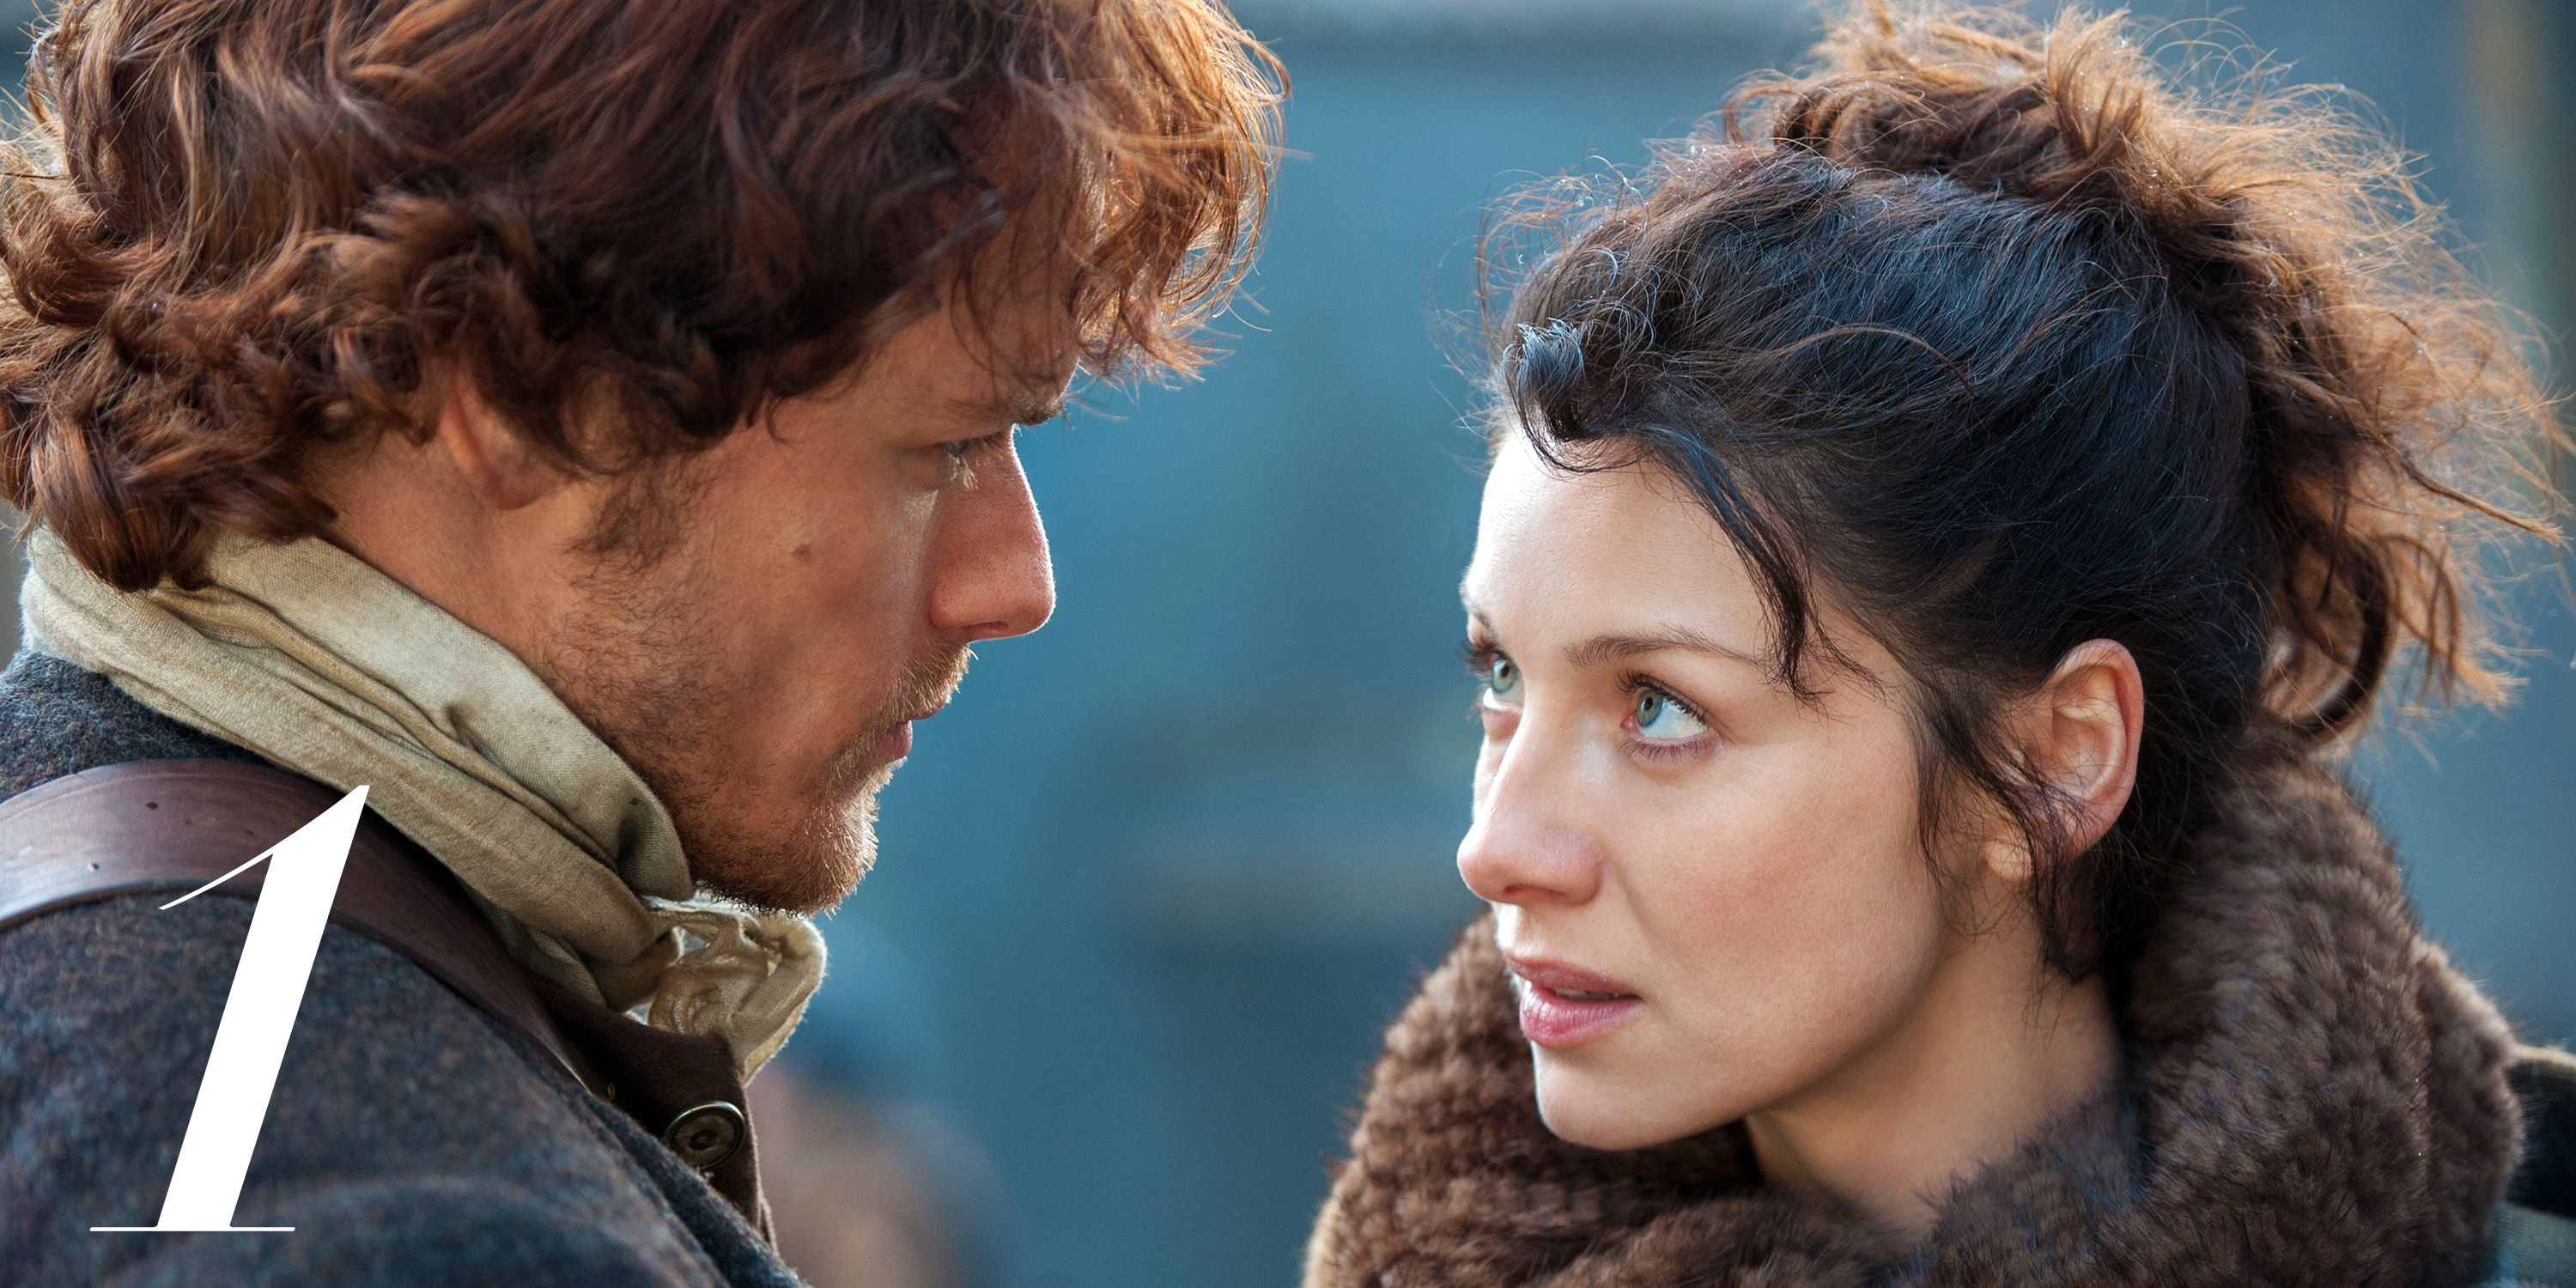 OUTLANDER, (from left): Sam Heughan, Caitriona Balfe, 'The Way Out', (Season 1, ep. 103, aired Aug. 23, 2014). photo: Neil Davidson / © Starz / Courtesy: Everett Collection